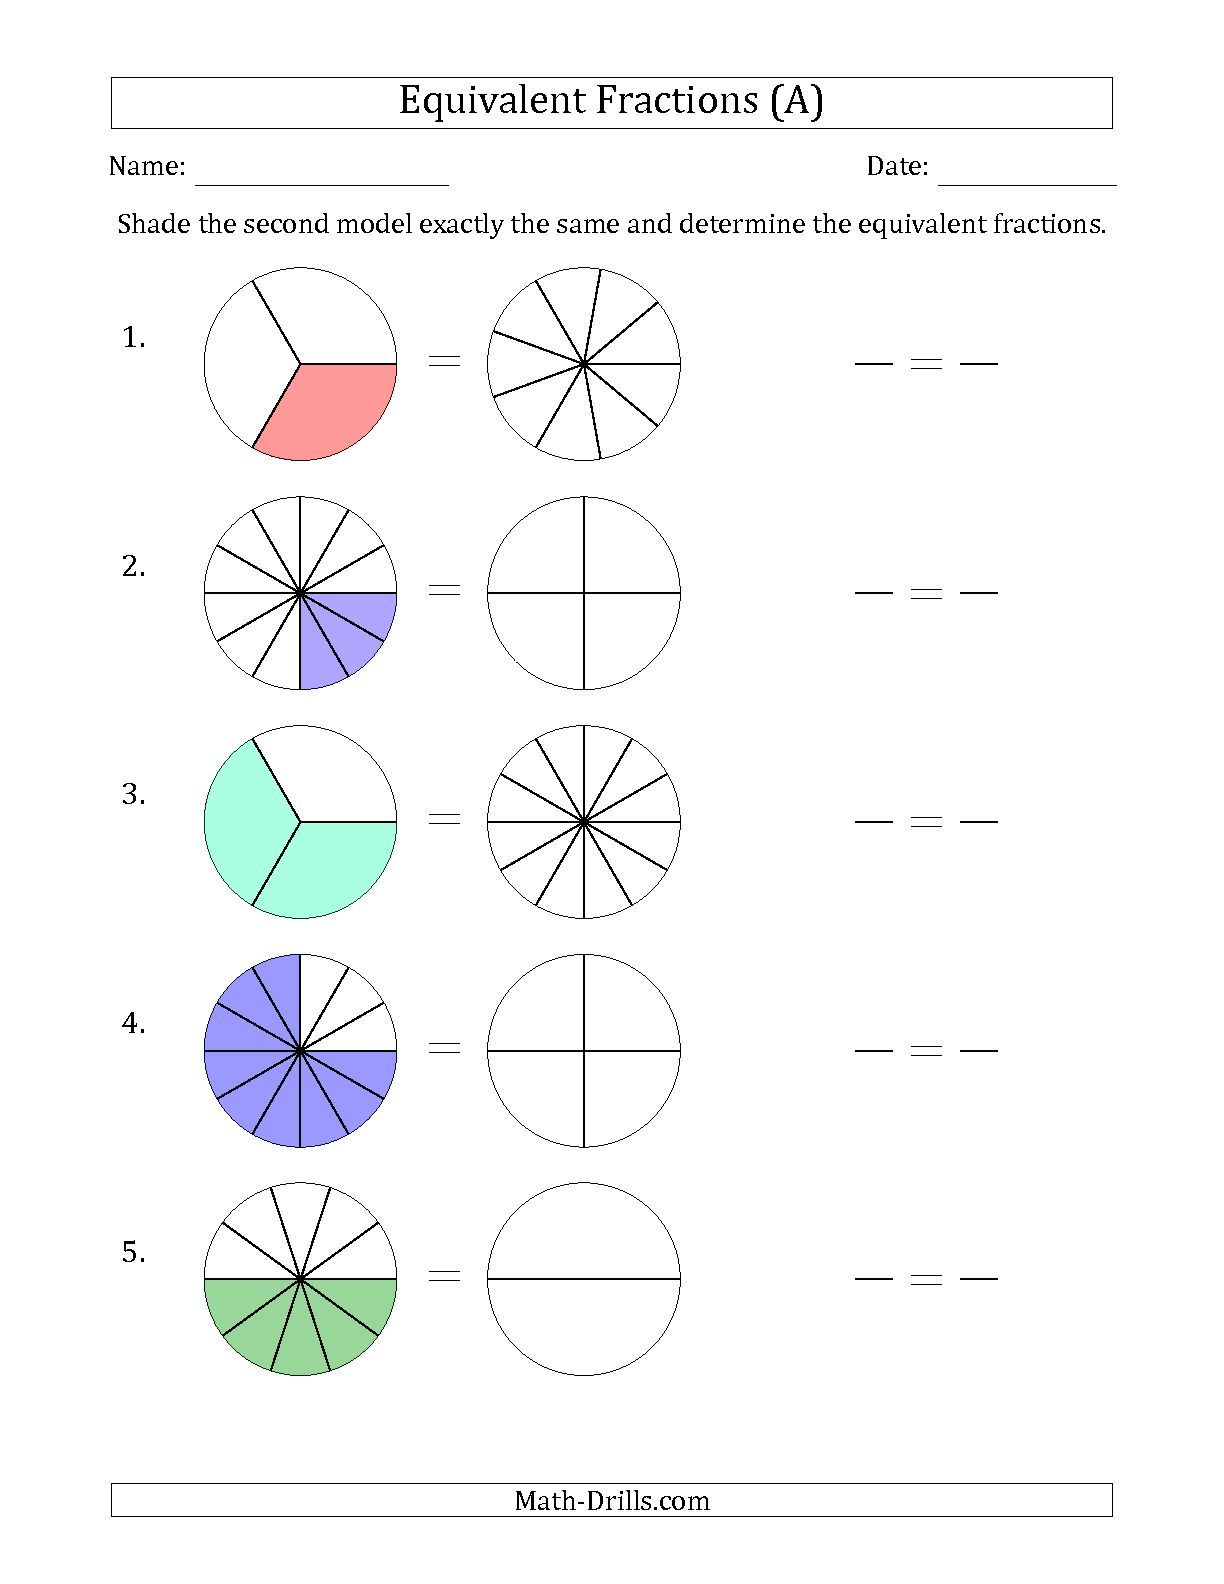 worksheet Free Worksheets On Equivalent Fractions the equivalent fractions models a math worksheet from page at math